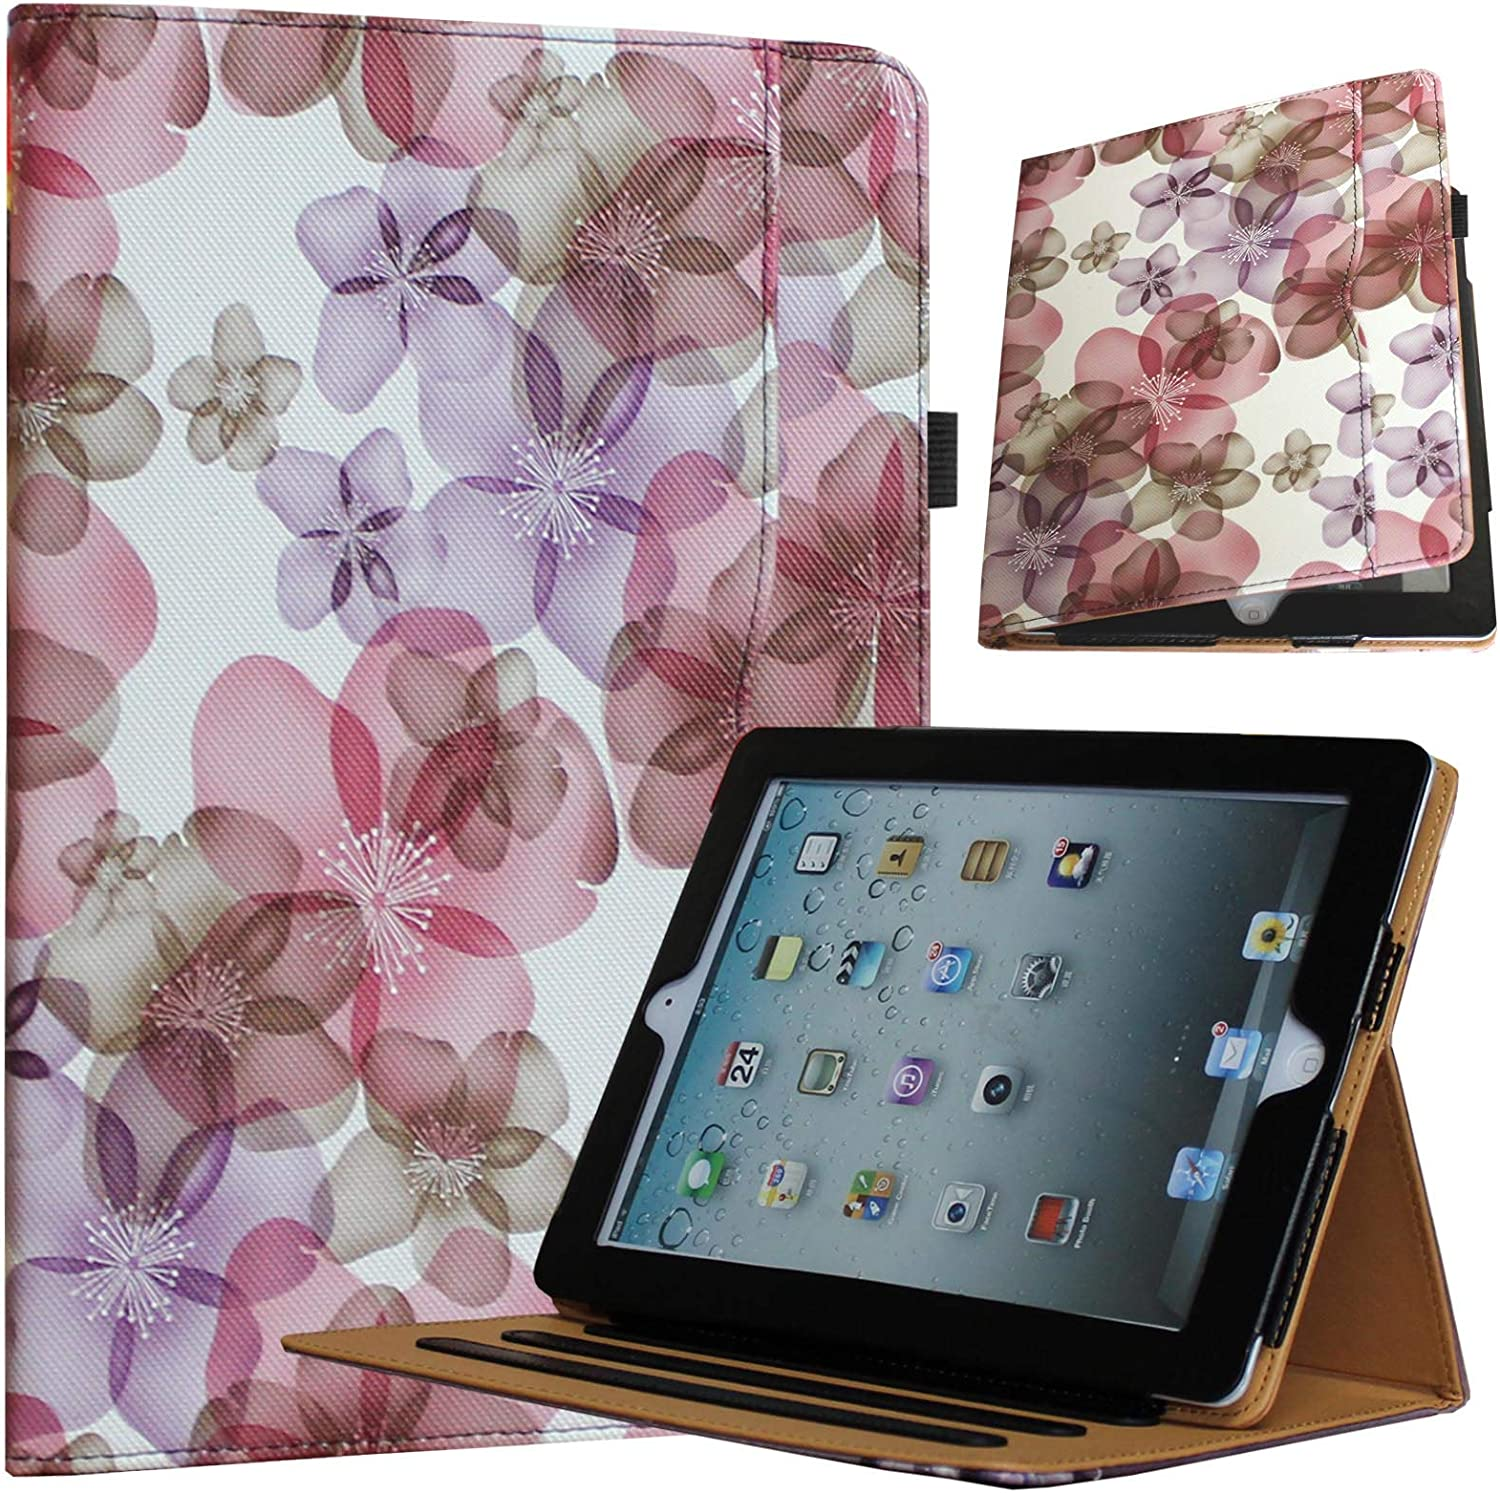 JYtrend Case for 2019 iPad shop Air famous 2017 3 pro 10.5 10.5-inch